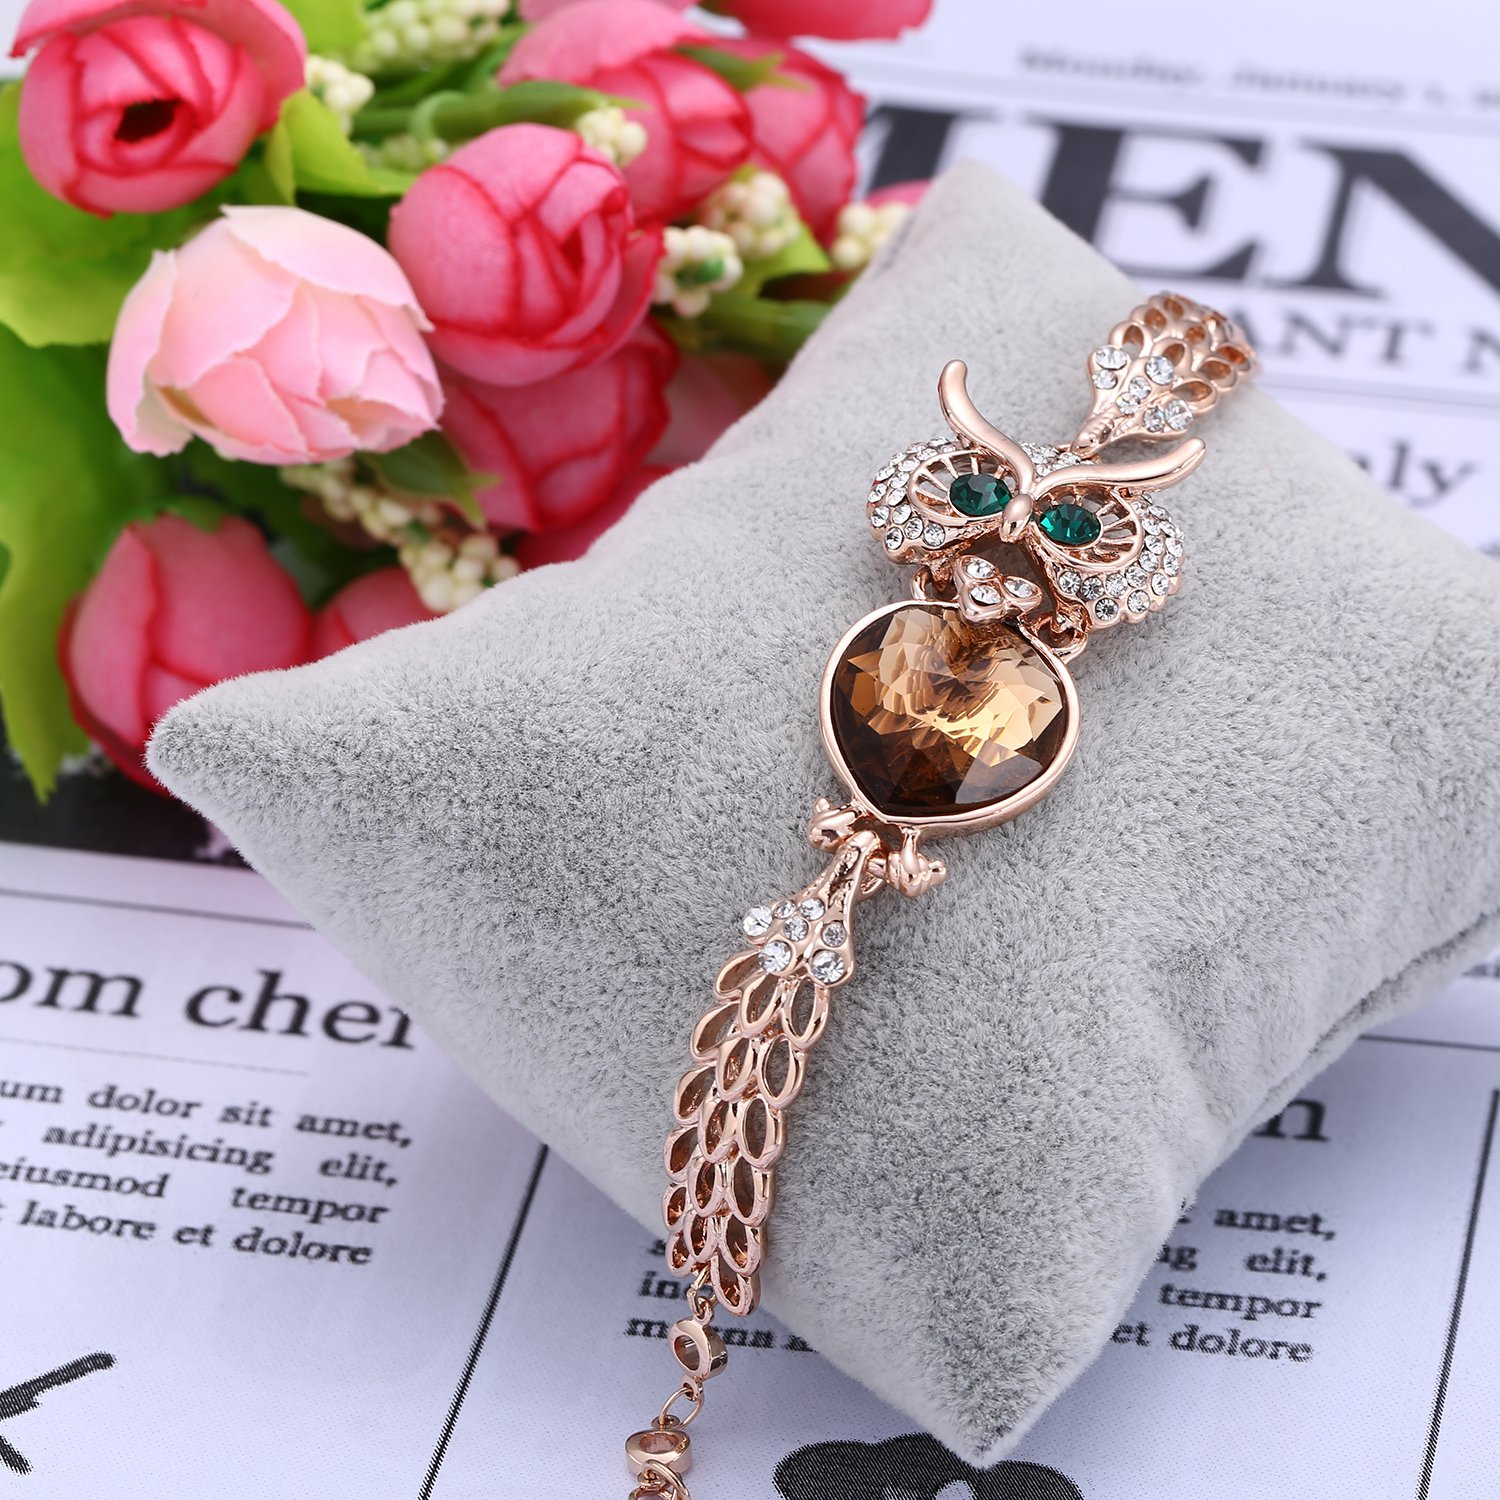 Menton Ezil Lucky Owl Bracelets With Turquoise Jewelry Charms Antique Golden Rhinestone Crystal for Womens Girls Gifts by Menton Ezil (Image #3)